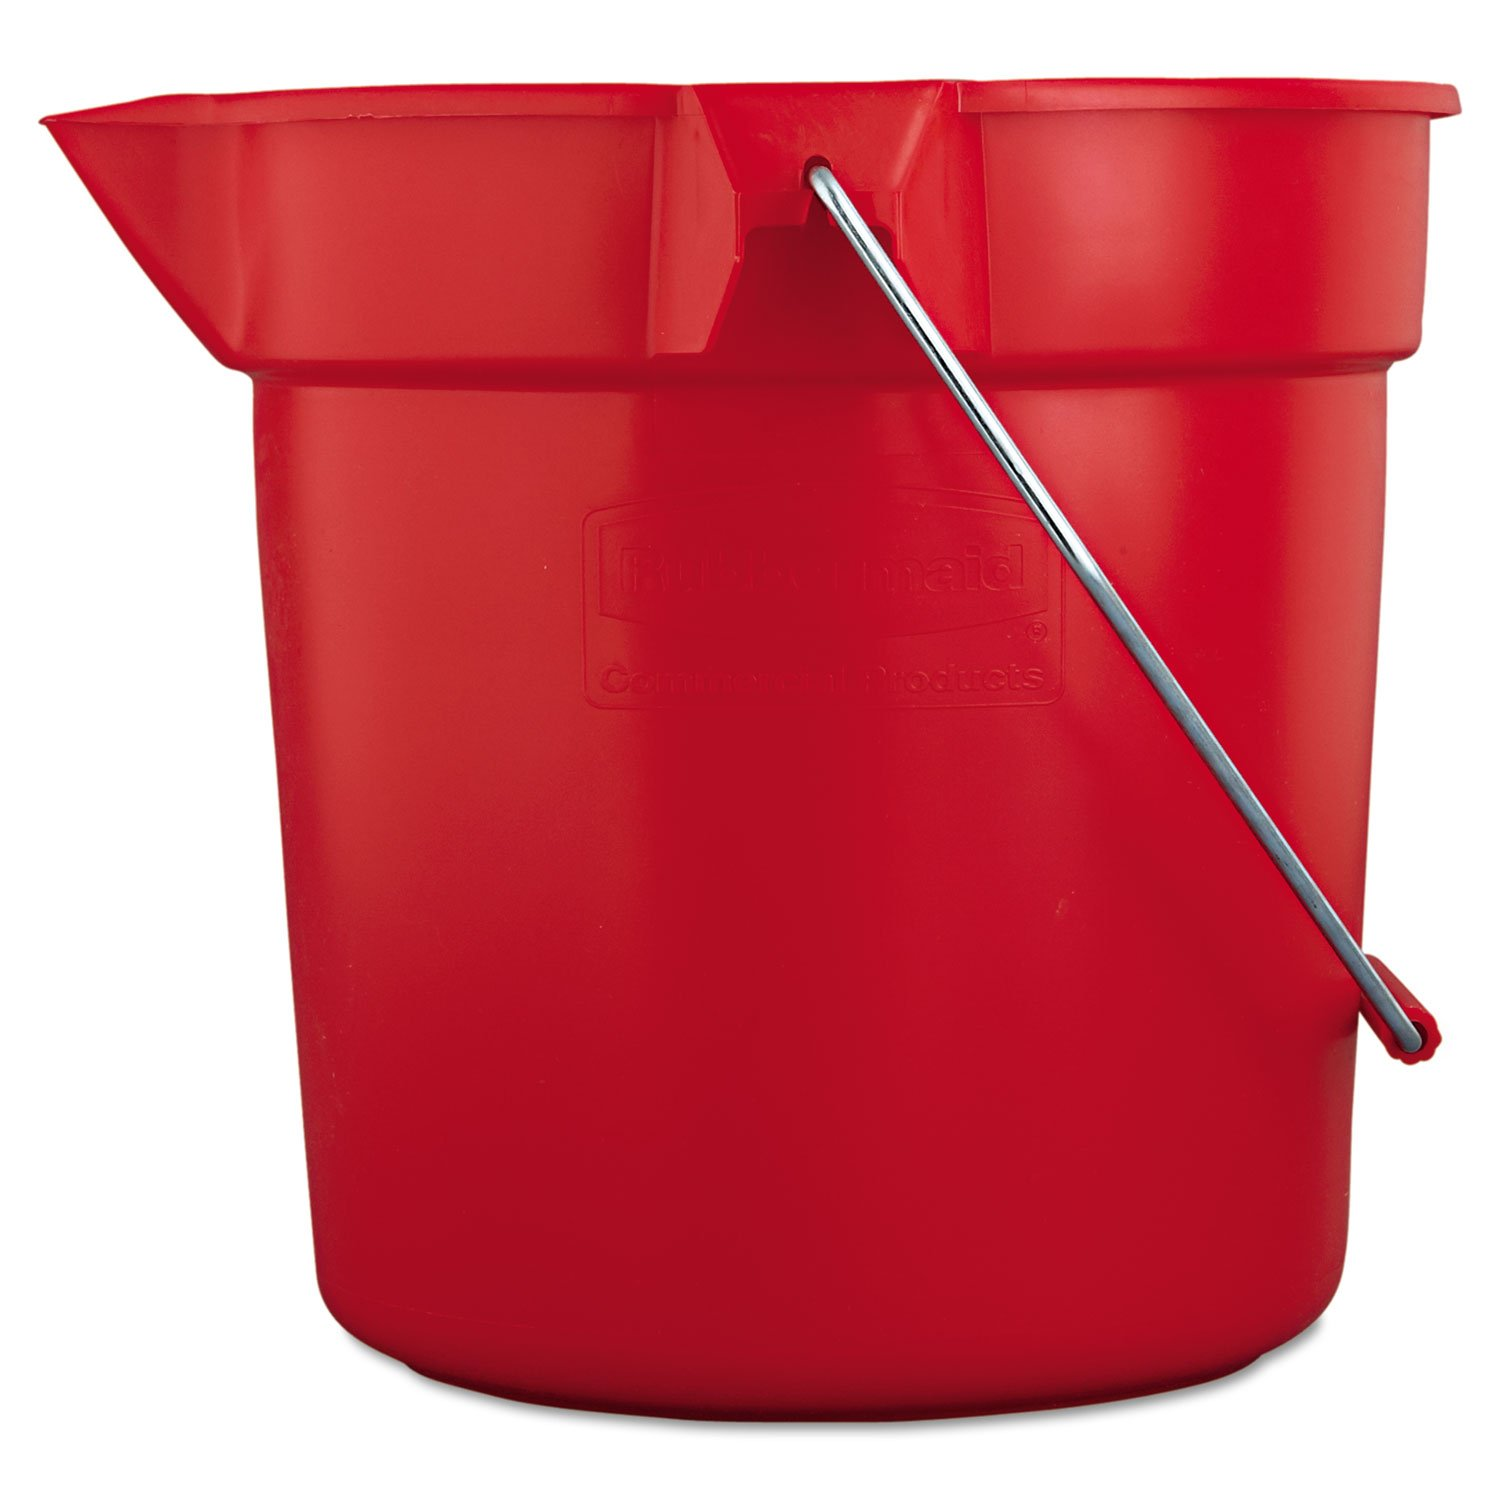 Rubbermaid Commercial 2963RED BRUTE Round Utility Pail 10qt Red